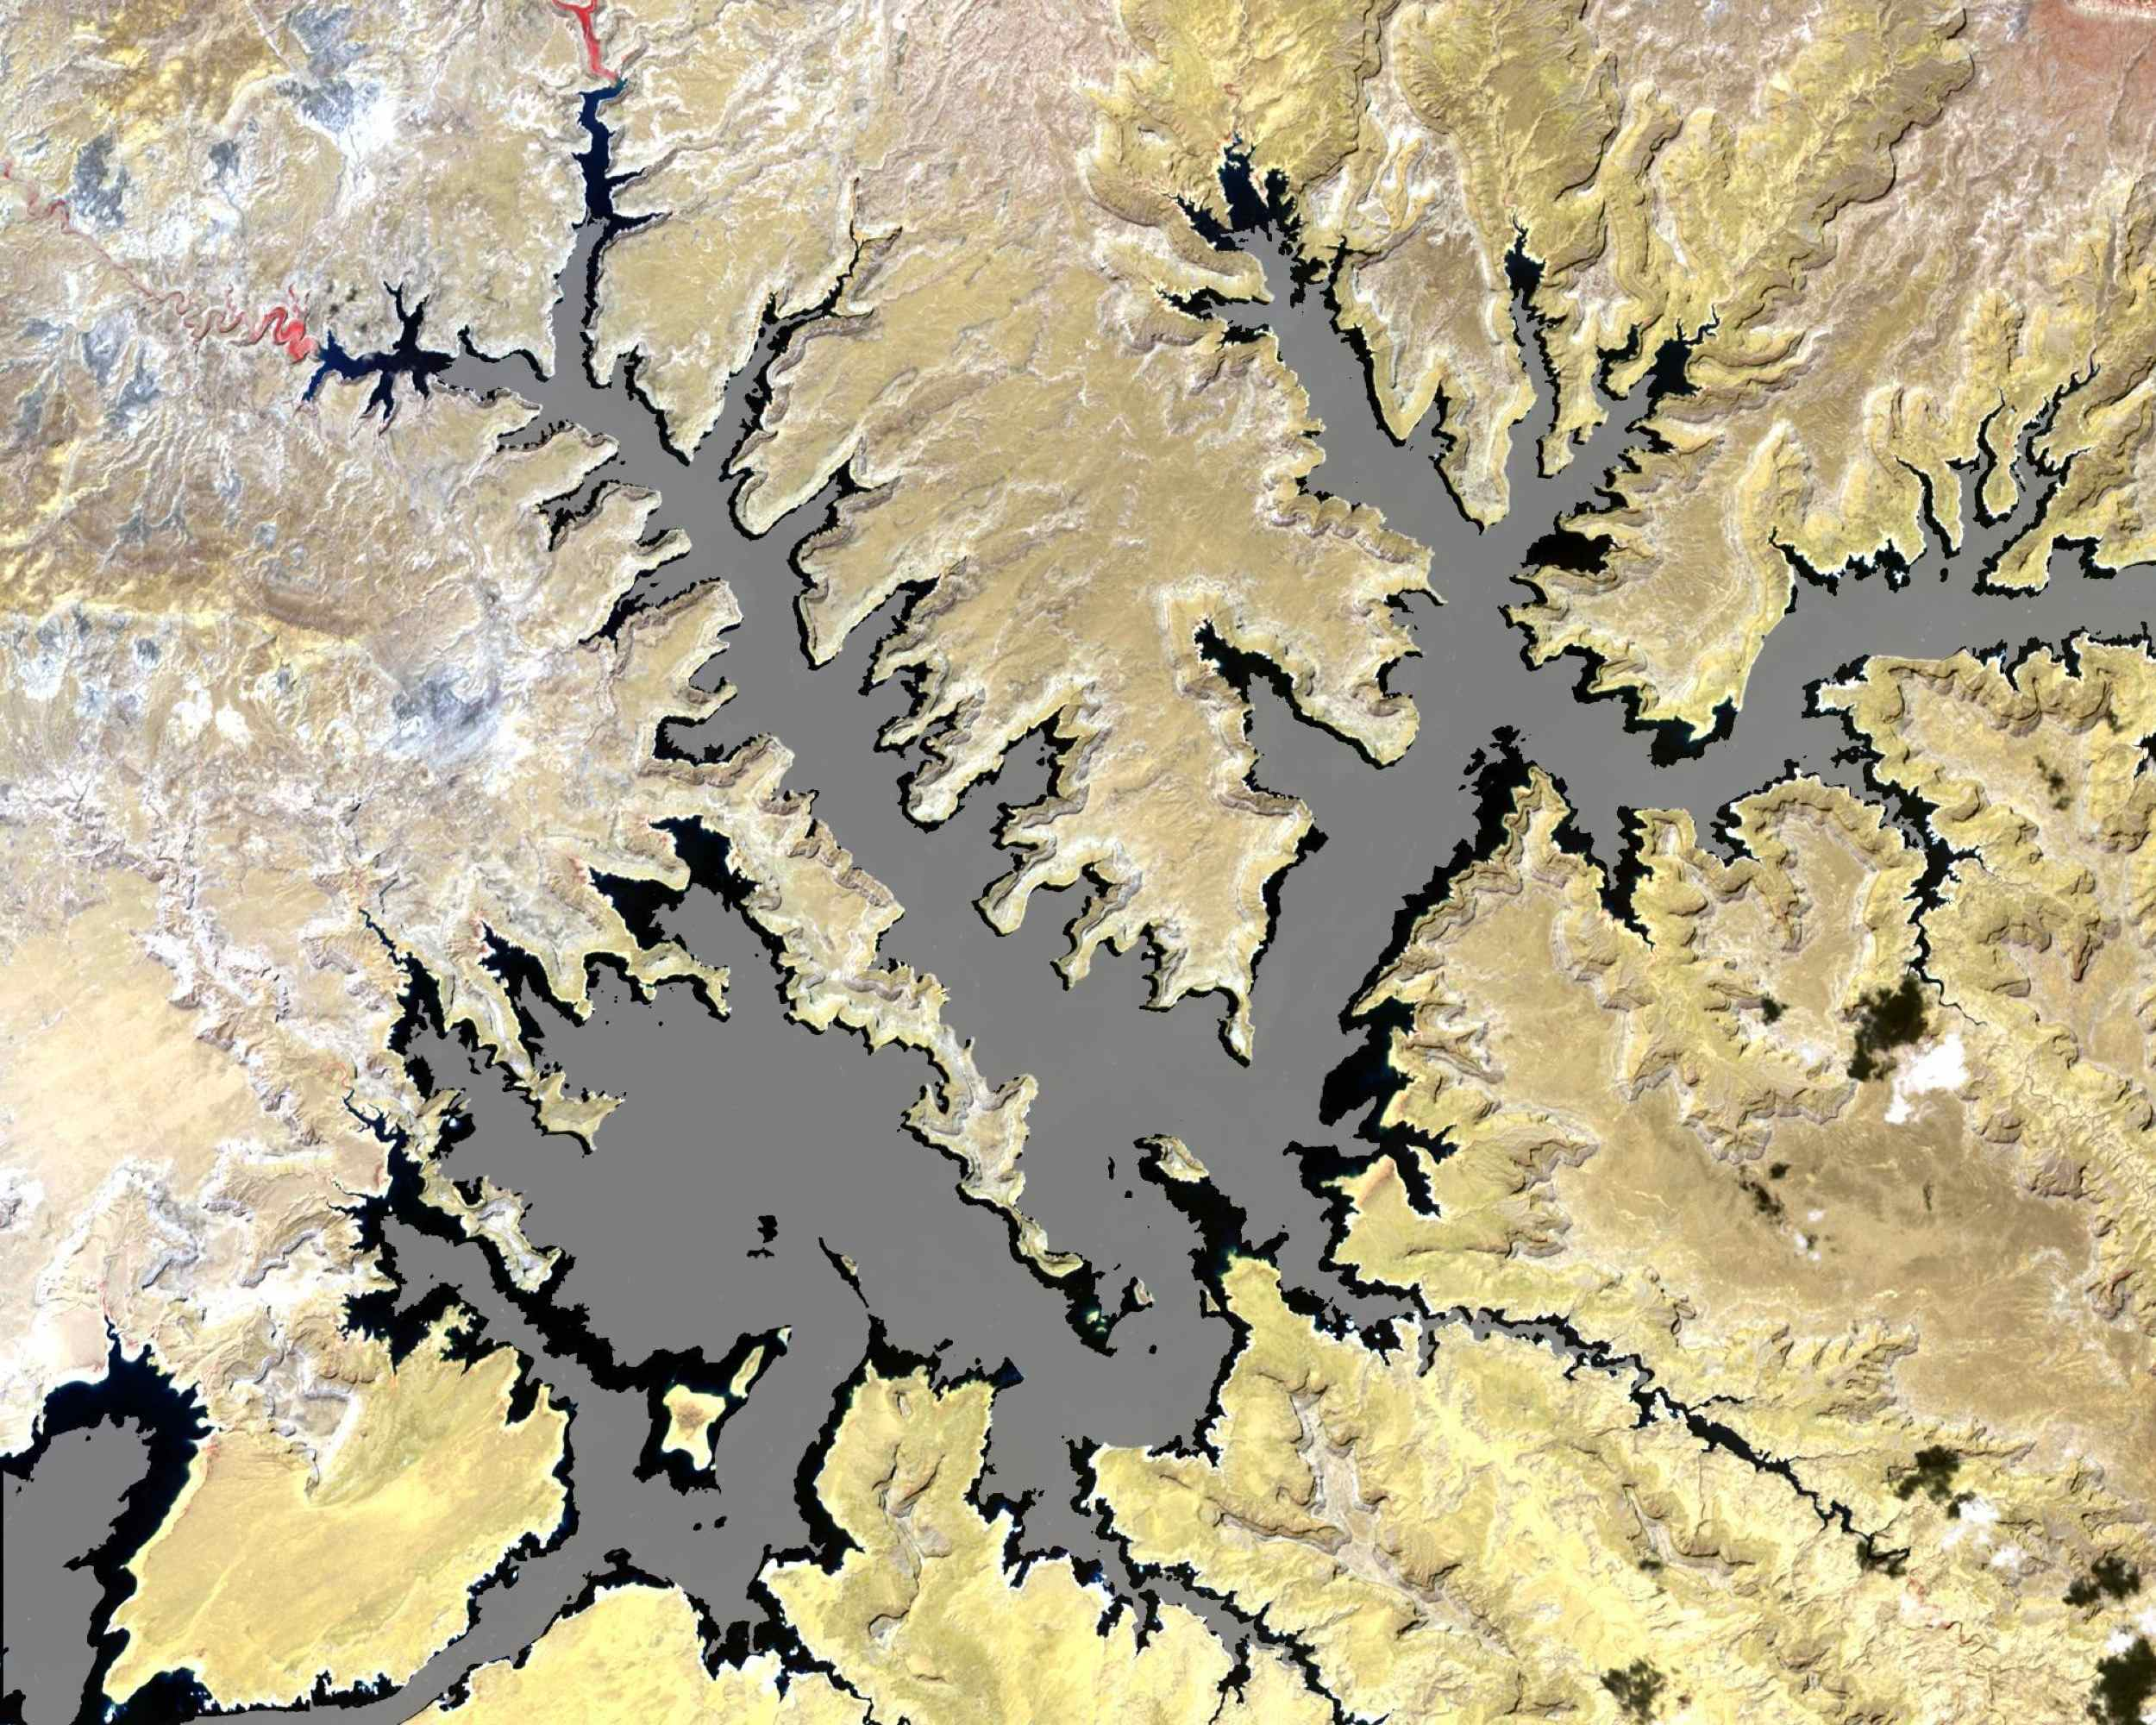 The white ring around Lake Powell tells the story. The surface is down 98 feet. This is critical, because Powell, Lake Mead, and other lakes along the Colorado River provide water for millions of people in five states. Image from NASA's Terra satellite.